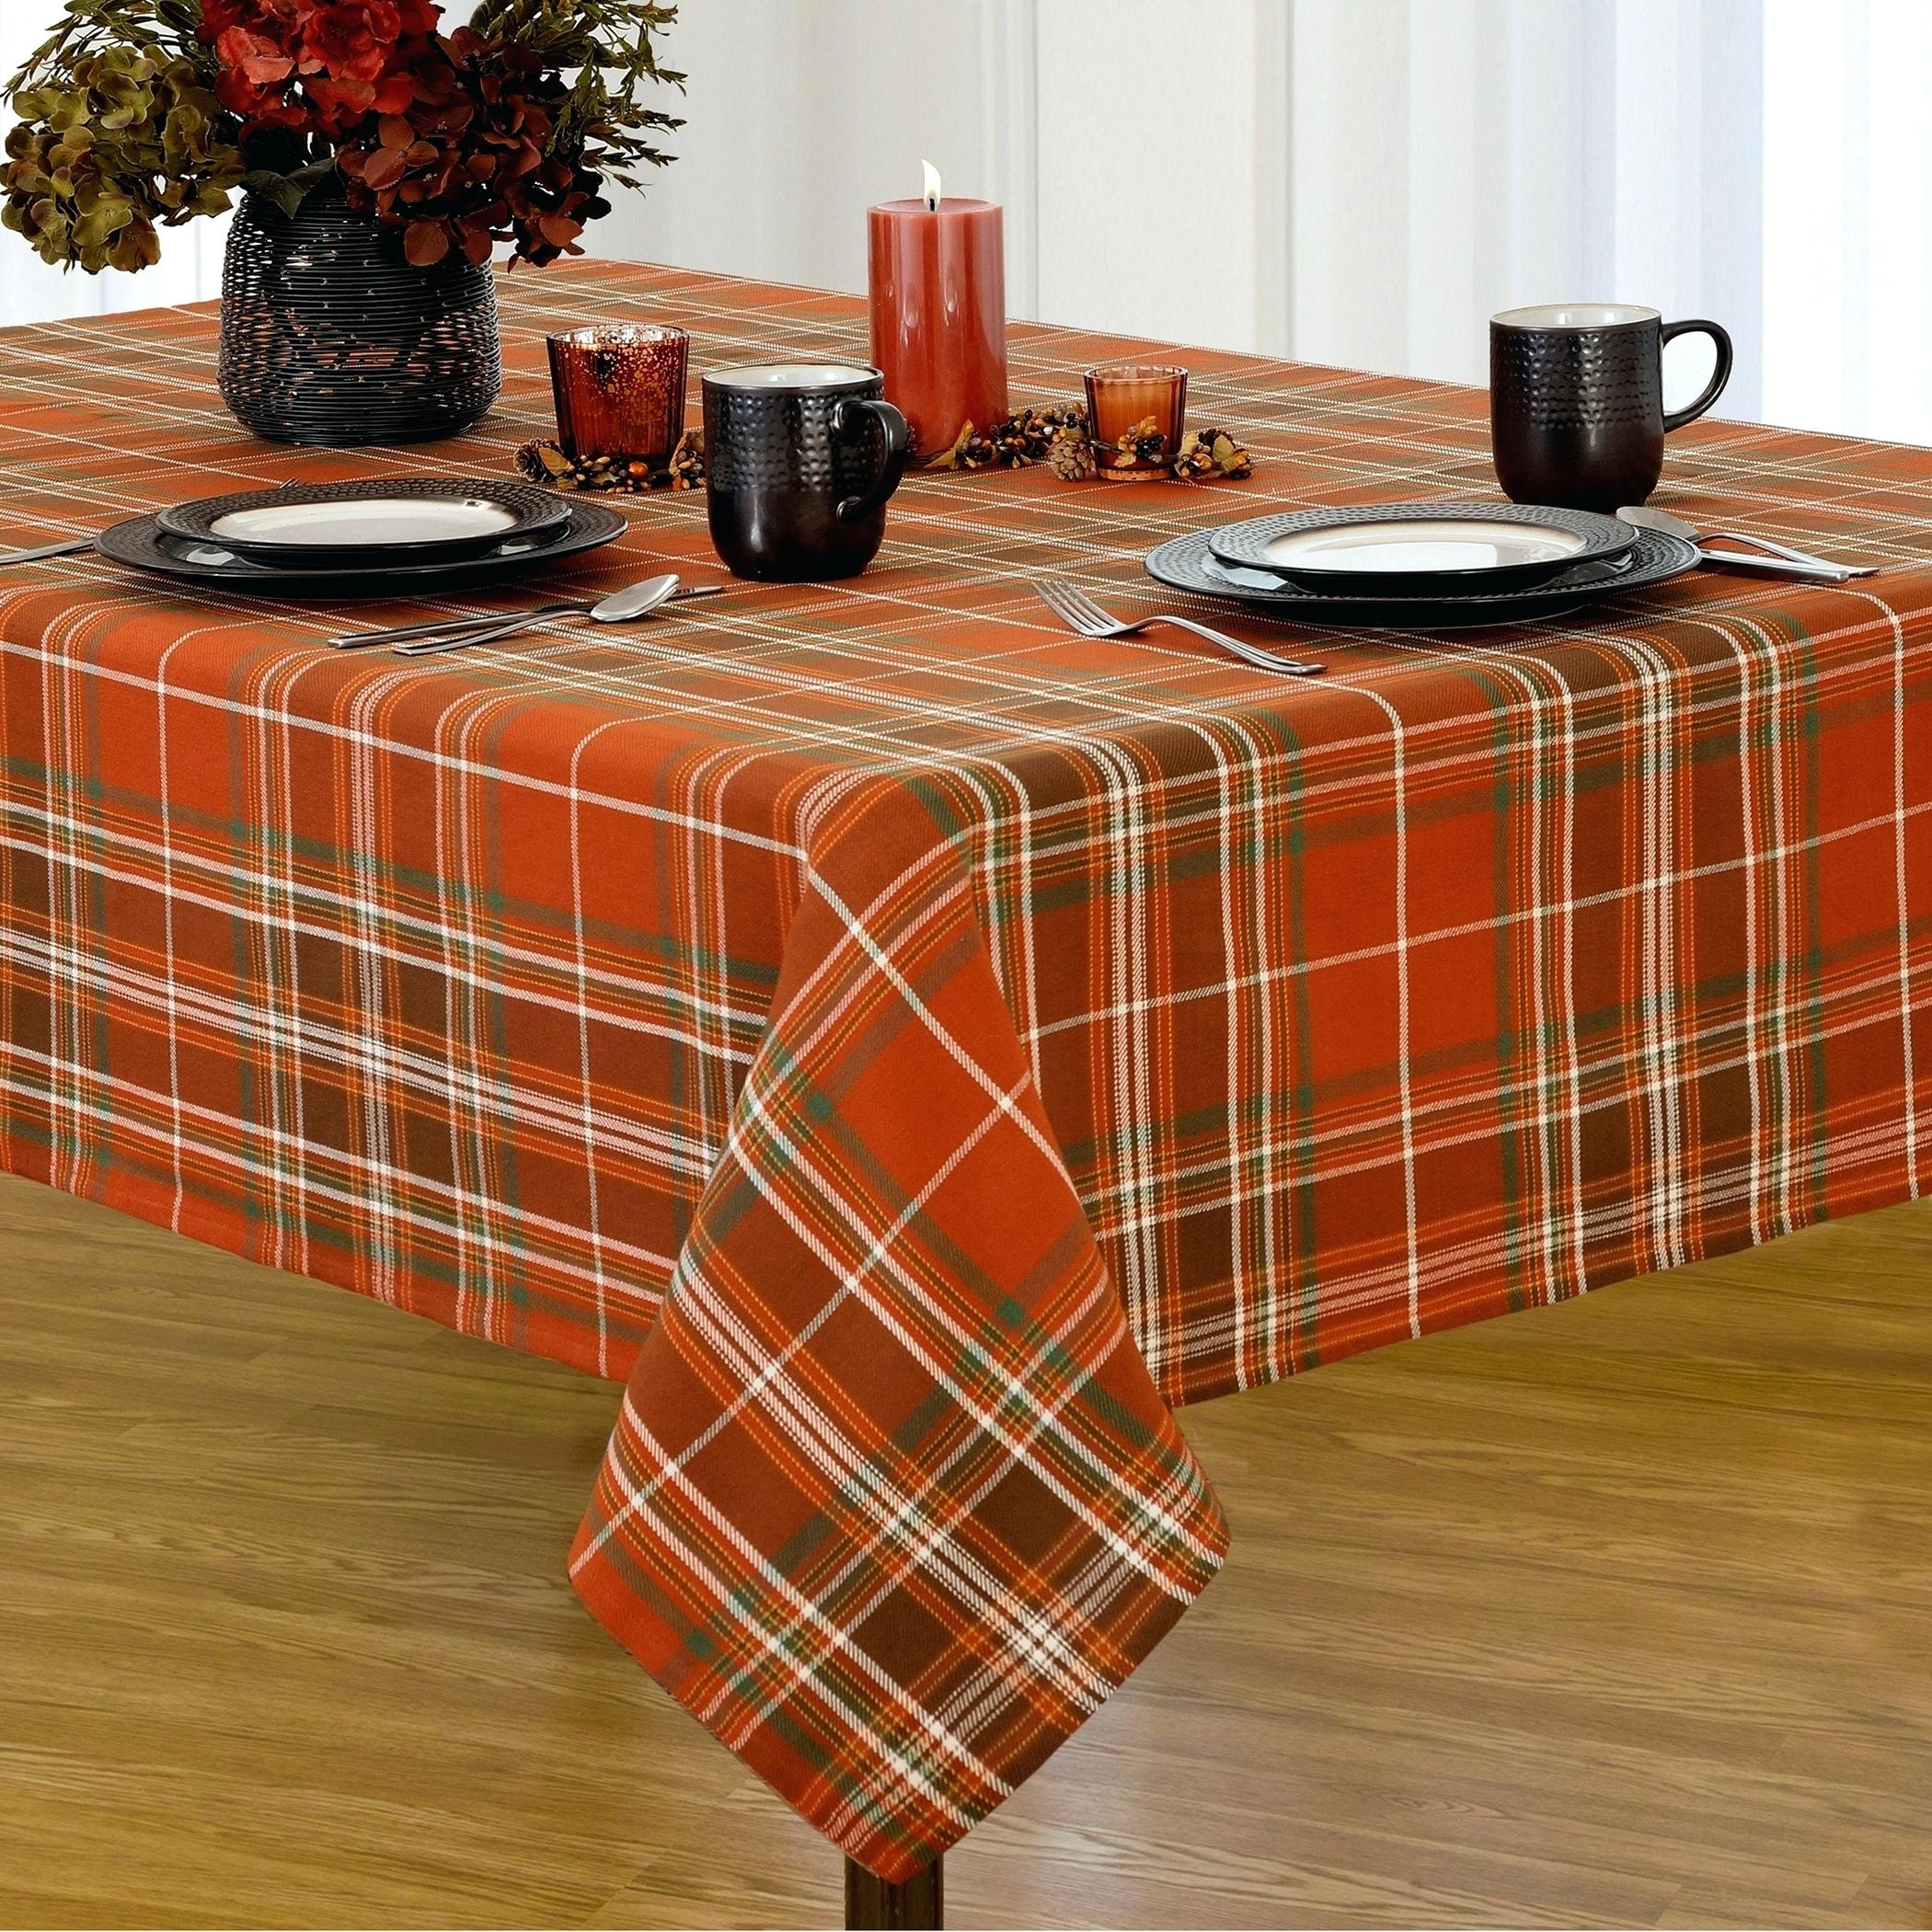 round accent table covers end cloth cover plaid fabric harvest cotton woven tablecloth for small target with drawer victorian console ashley furniture sectional couch laundry